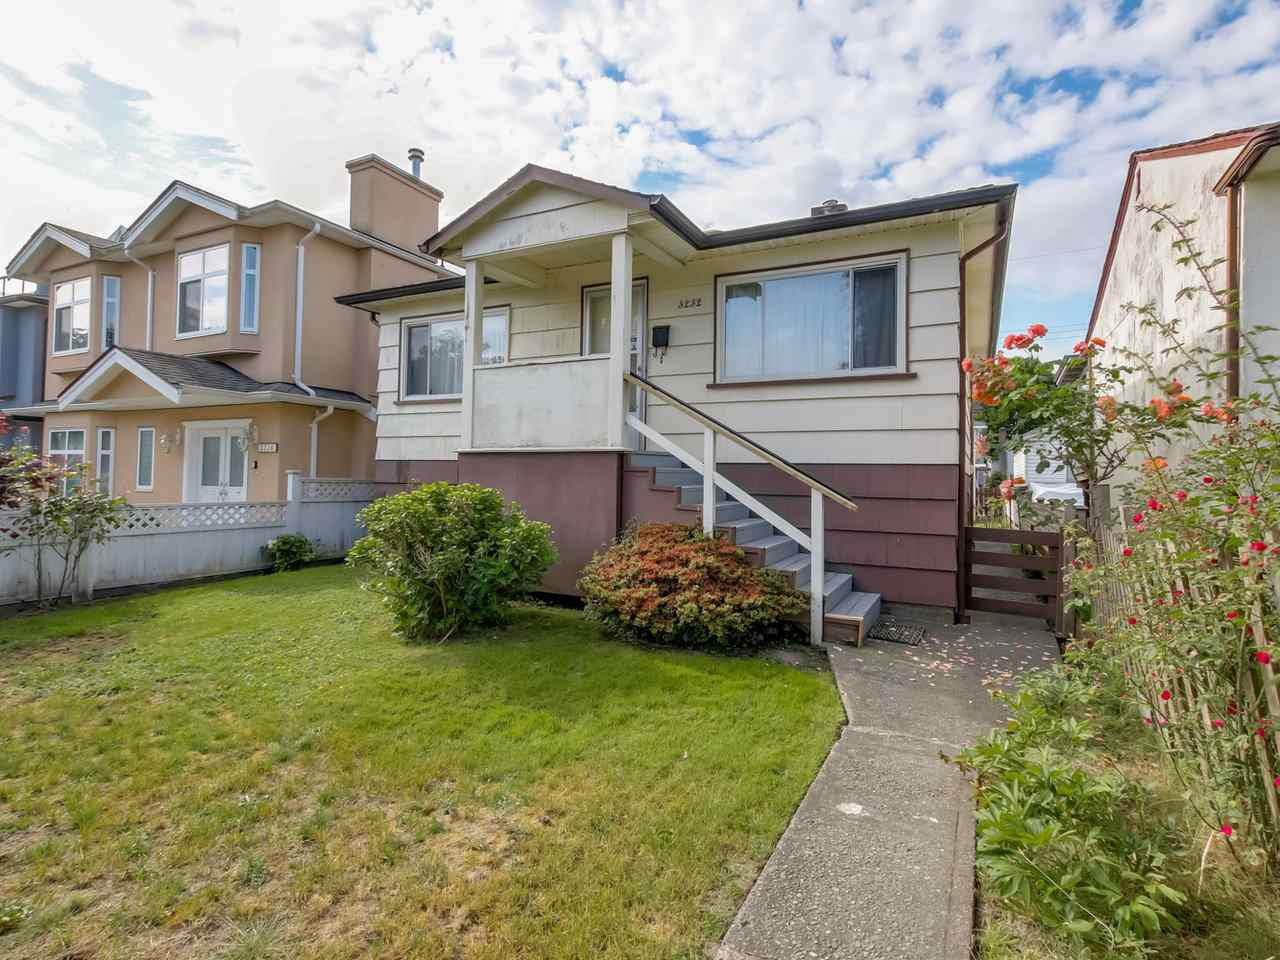 Main Photo: 3232 NAPIER Street in Vancouver: Renfrew VE House for sale (Vancouver East)  : MLS®# R2072671